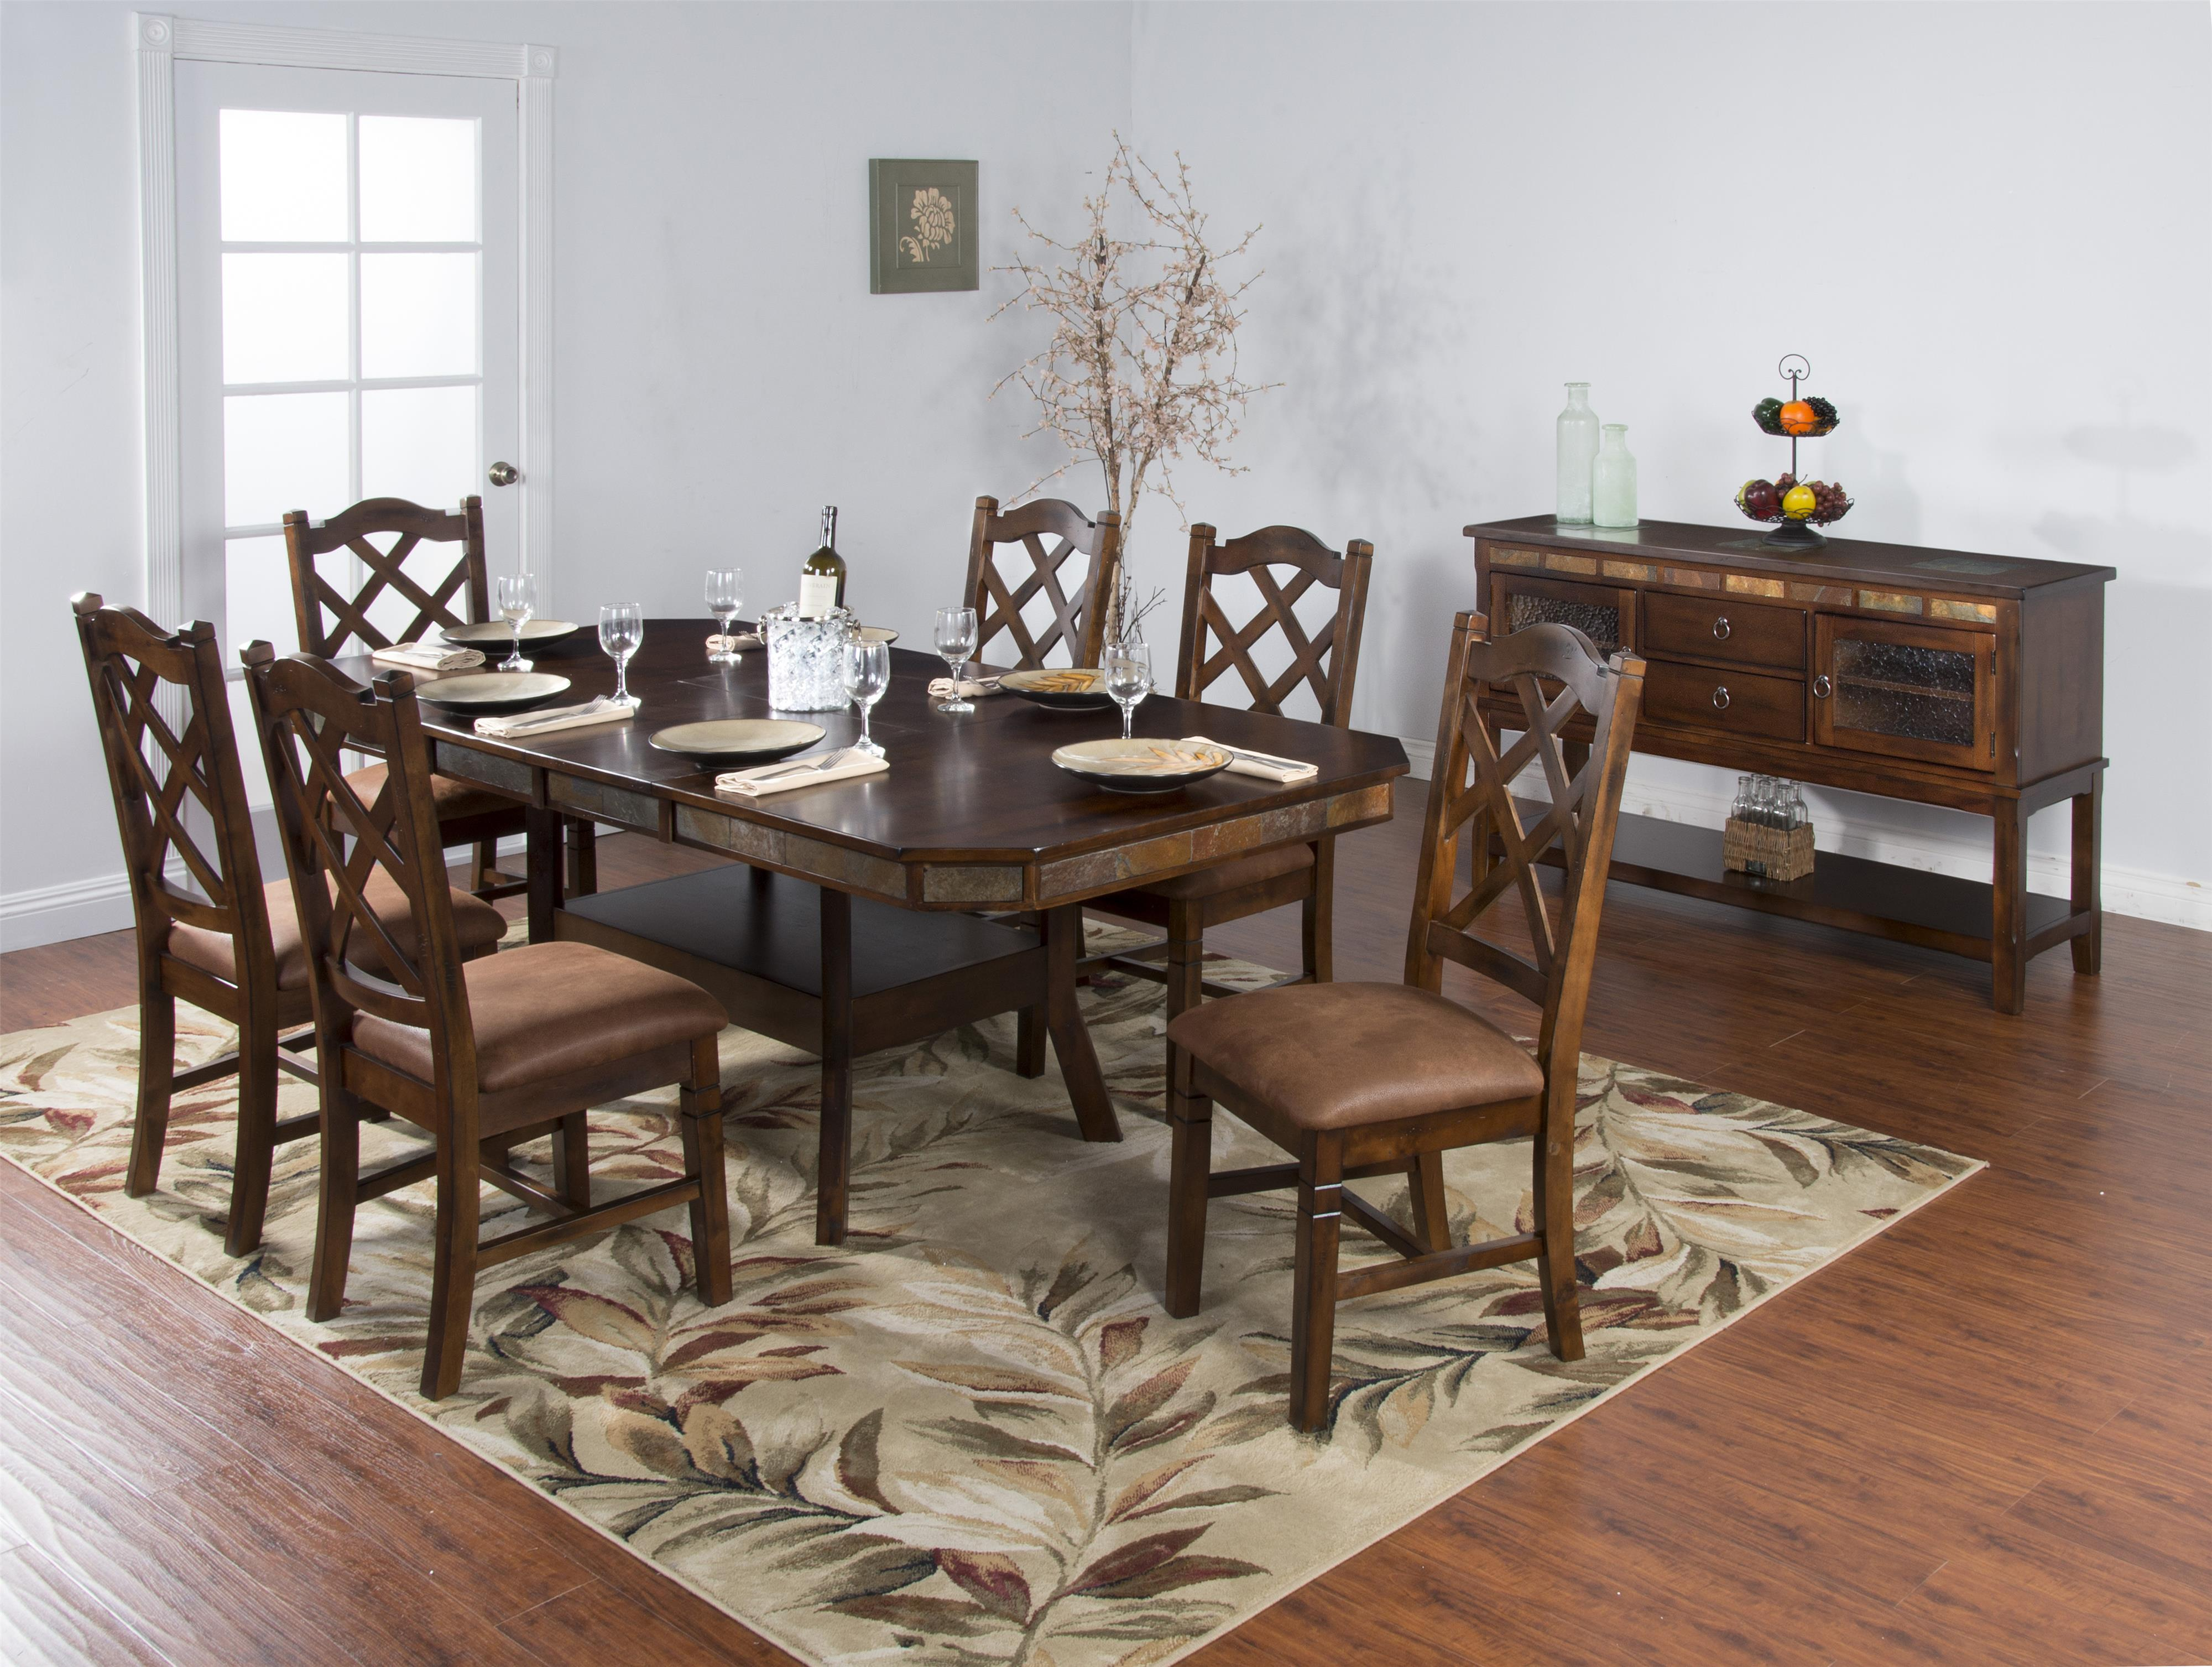 Sunny Designs Santa Fe Casual Dining Room Group - Item Number: DC Dining Room Group 1